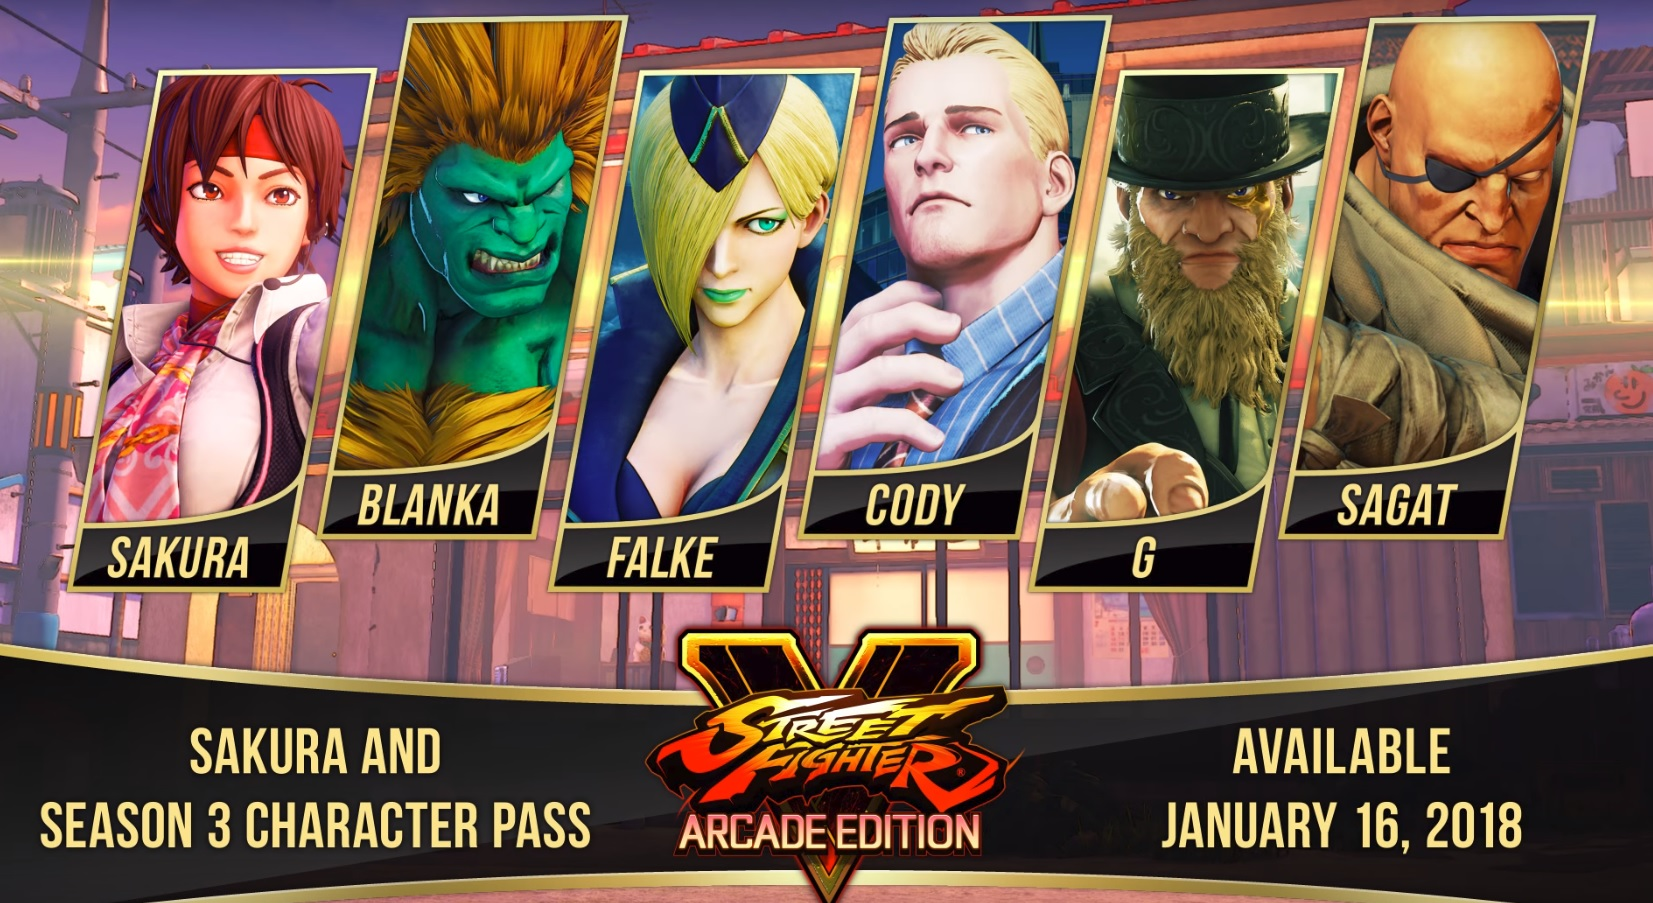 New Street Fighter 5 Fighters / Characters Launch With Season 3